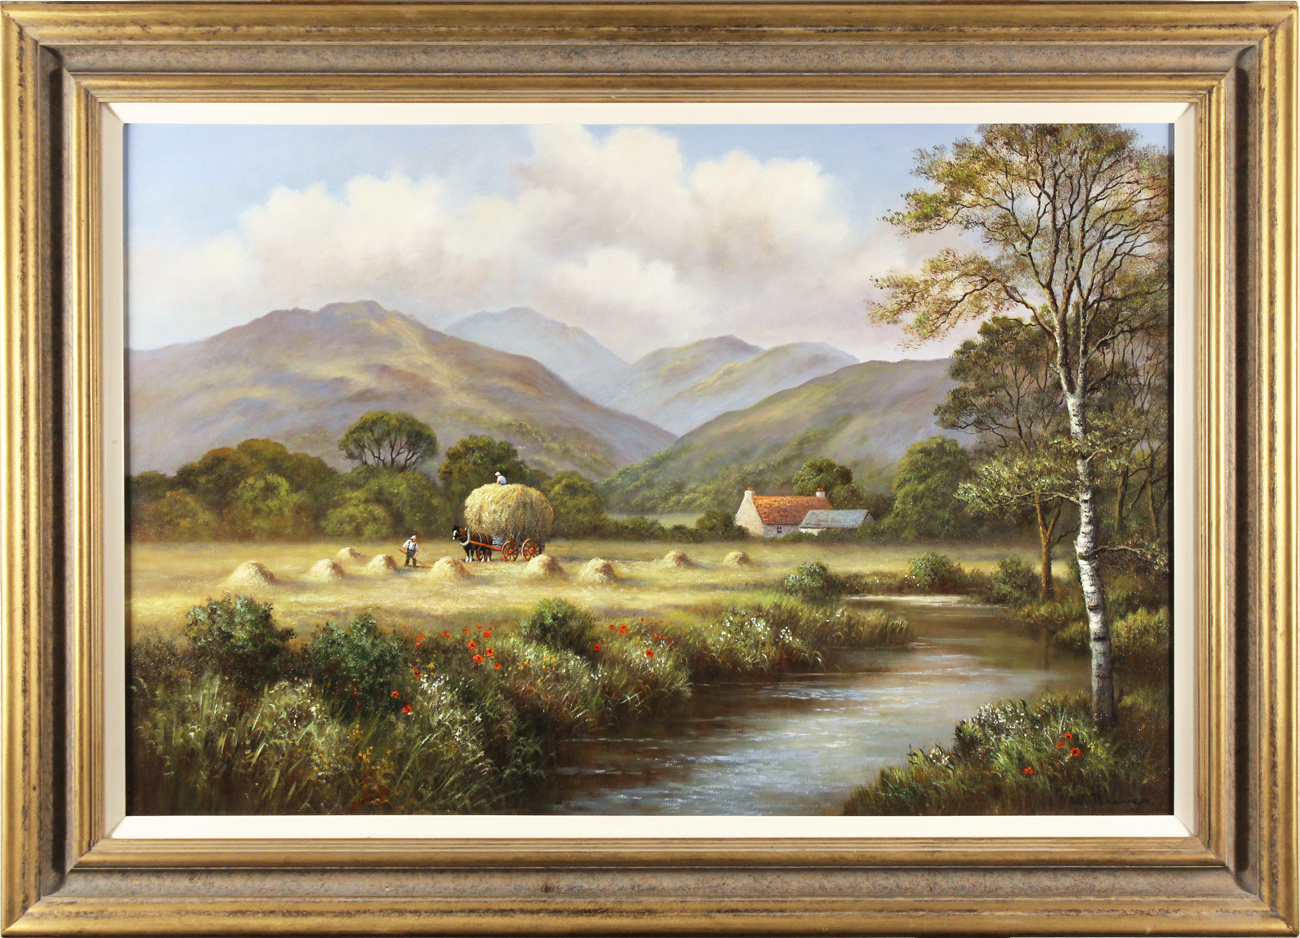 Wendy Reeves, Original oil painting on canvas, Highland Harvest, click to enlarge